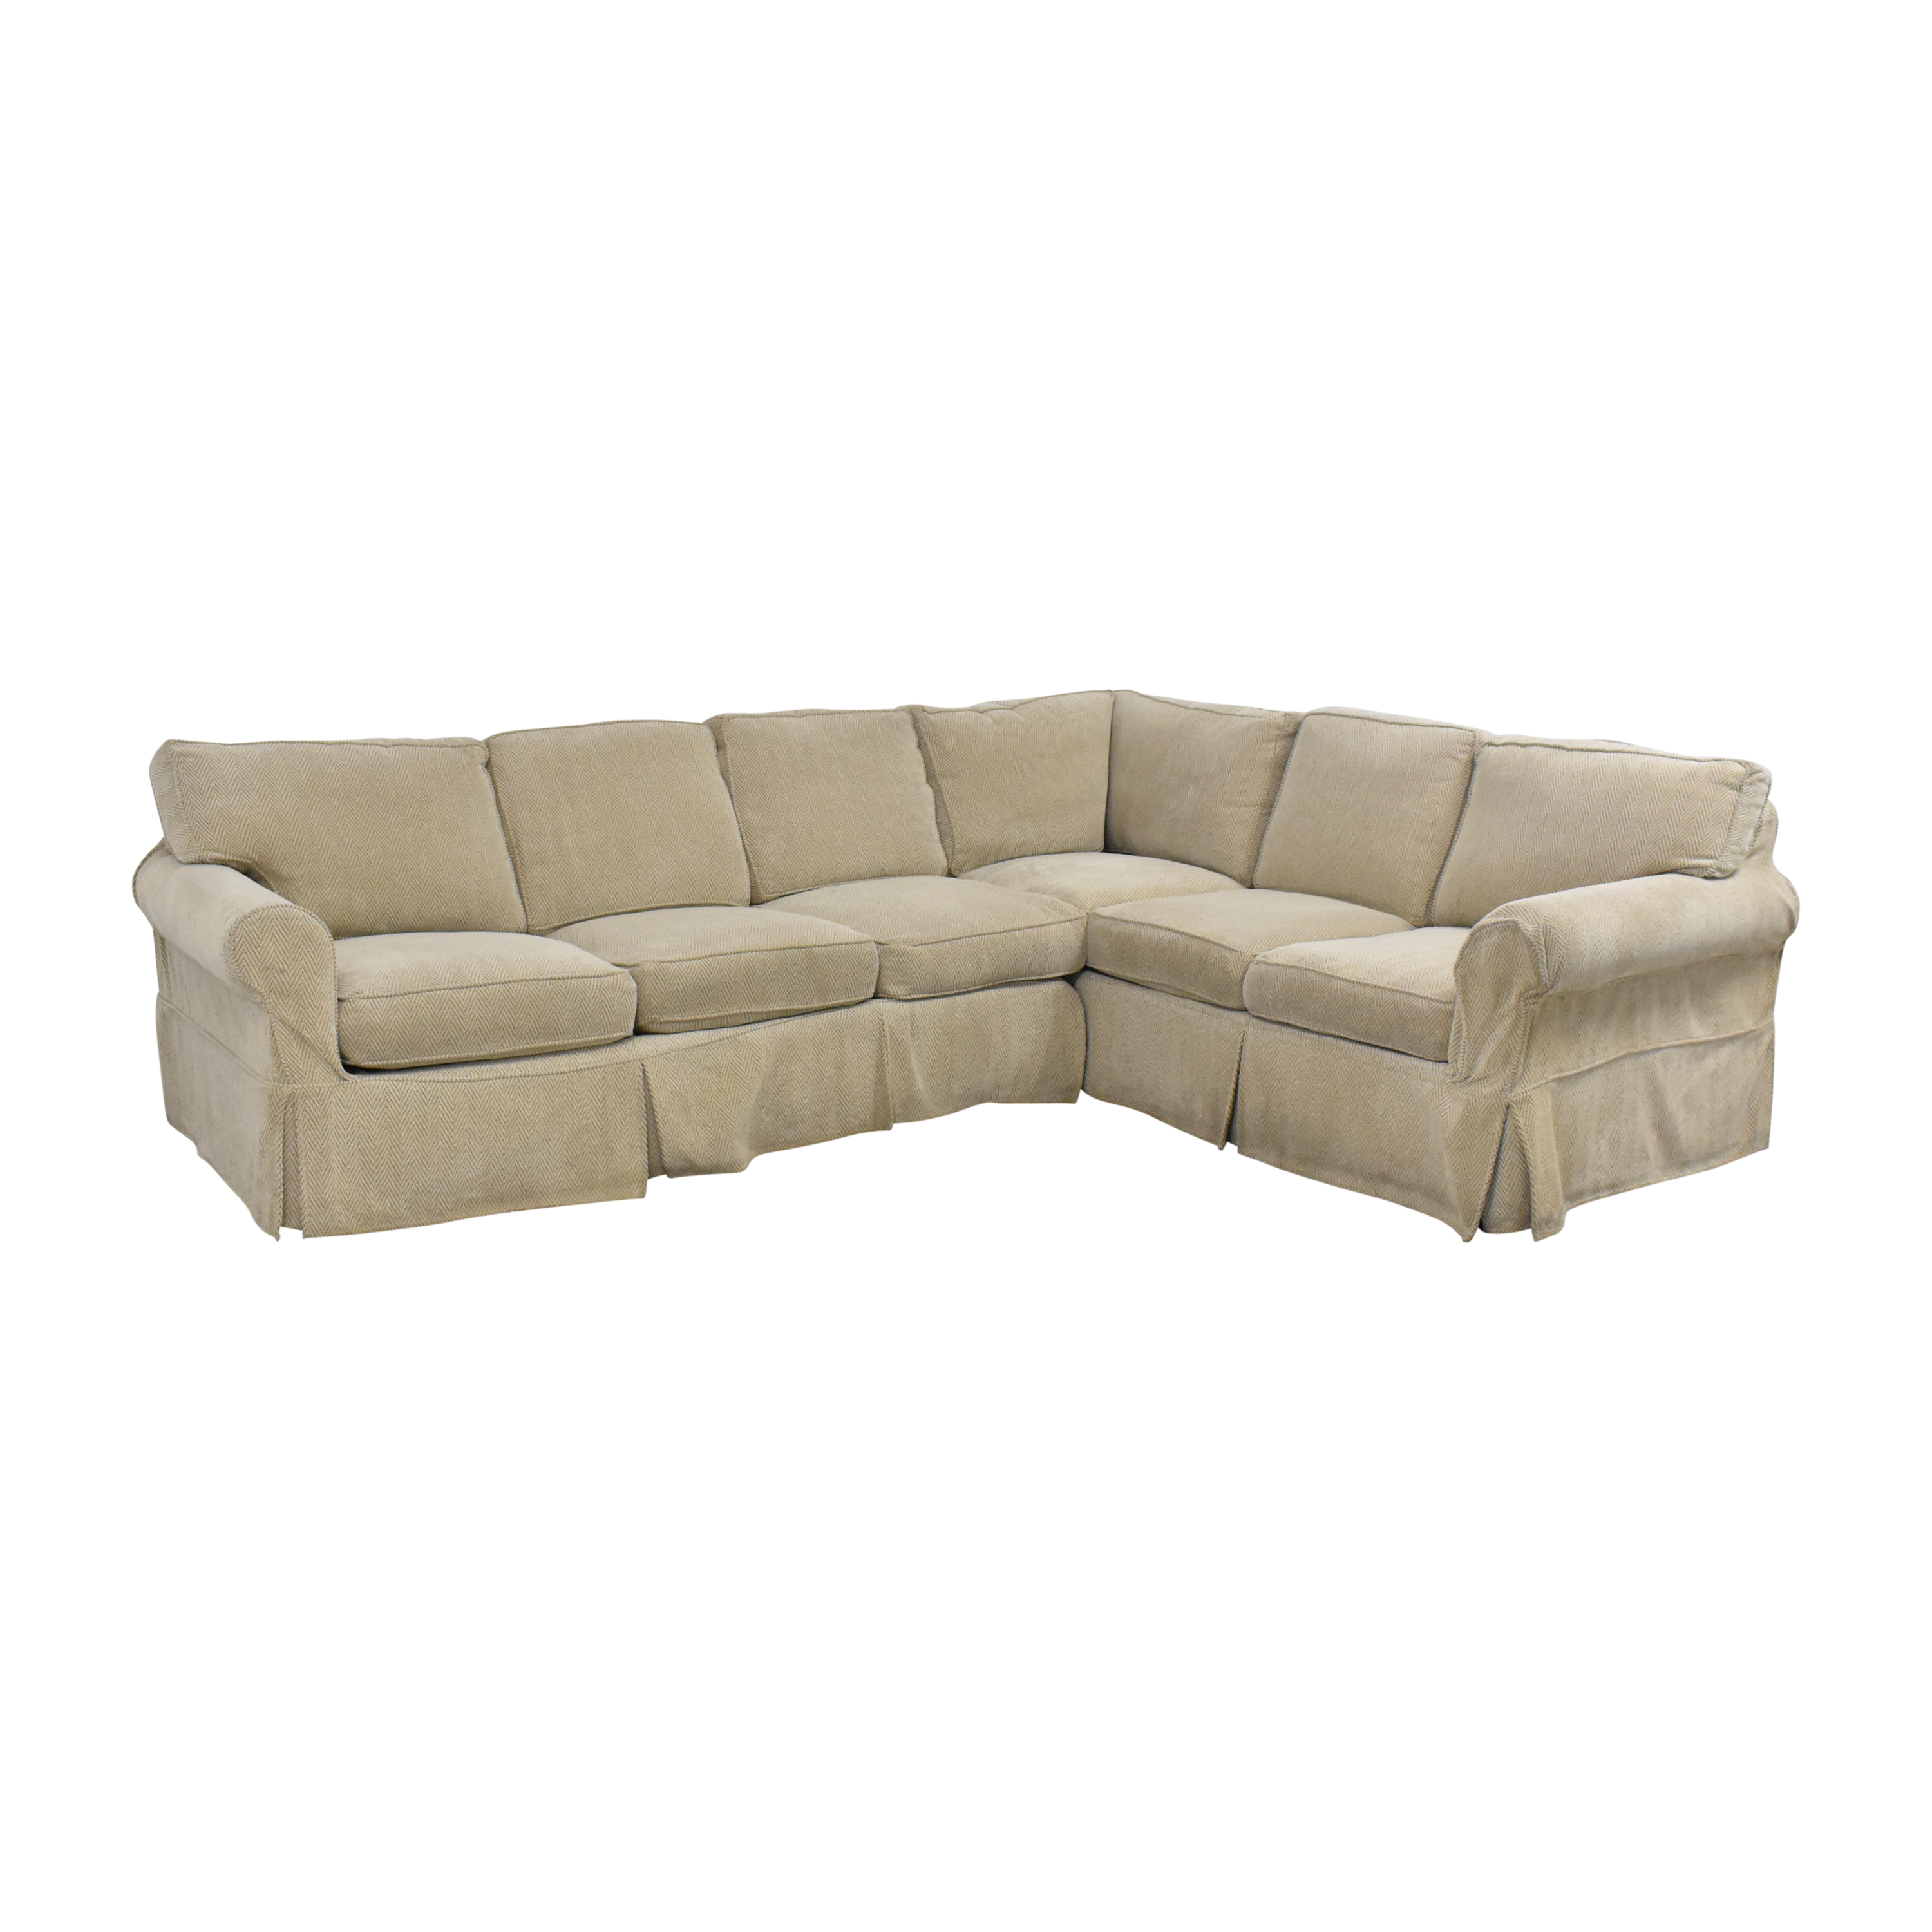 Country Willow Country Willow Vineyard Slipcovered Corner Sectional Sofa second hand